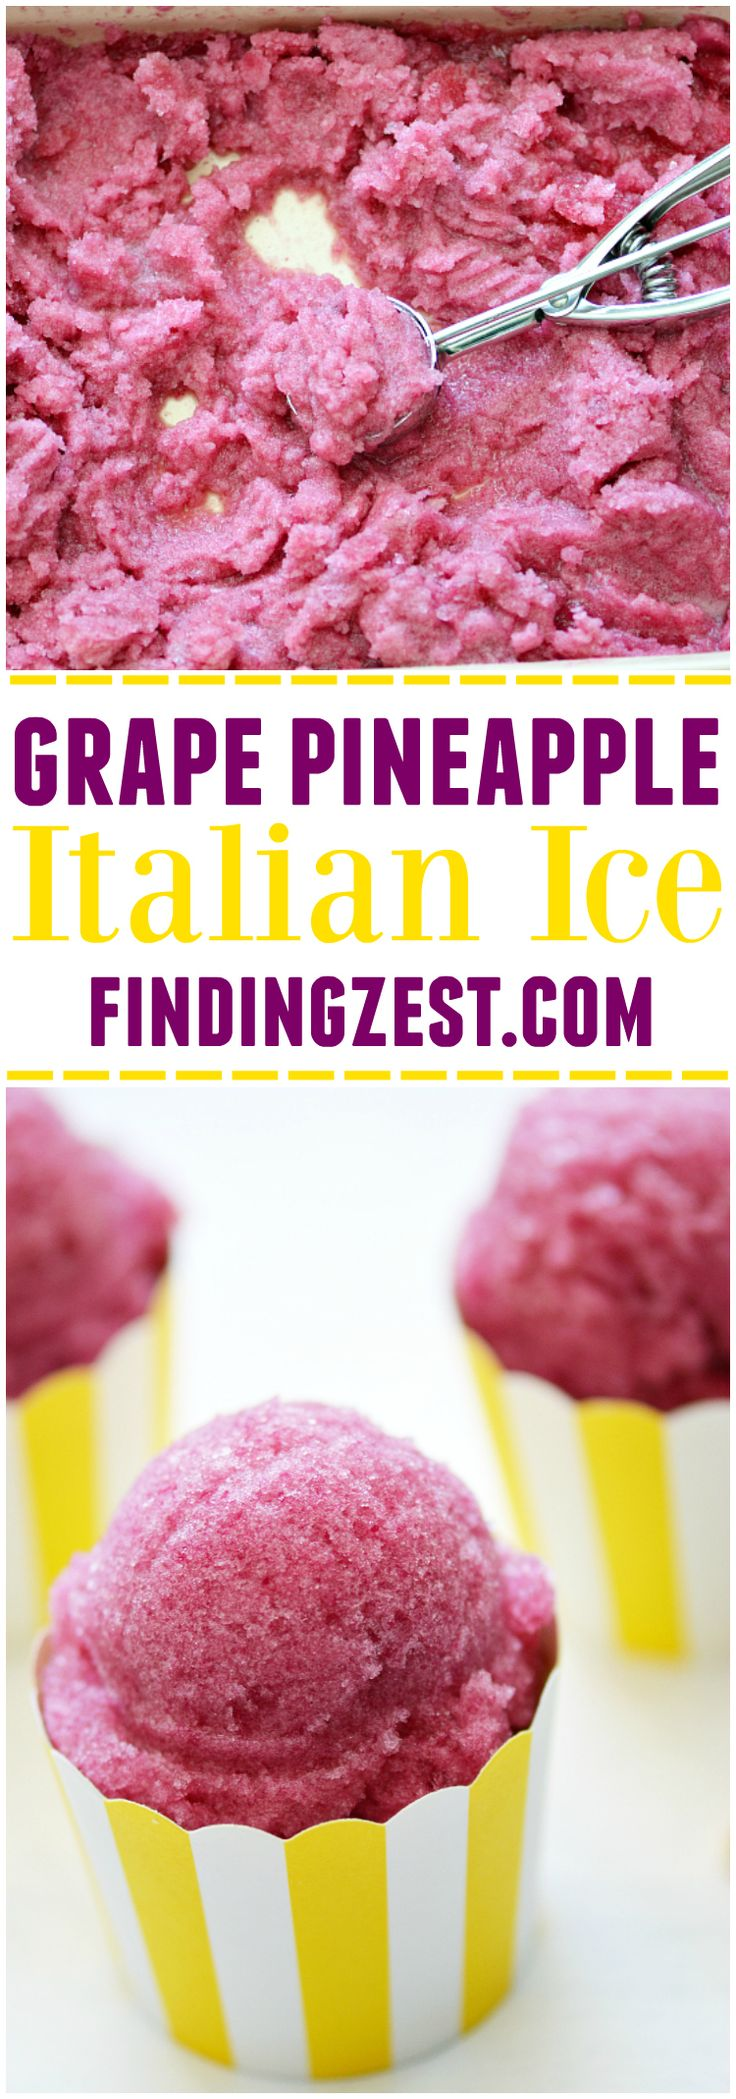 Only three ingredients are needed to make this Grape Pineapple Italian Ice! With no added sugar, this treat is so refreshing and an easy snack or dessert!